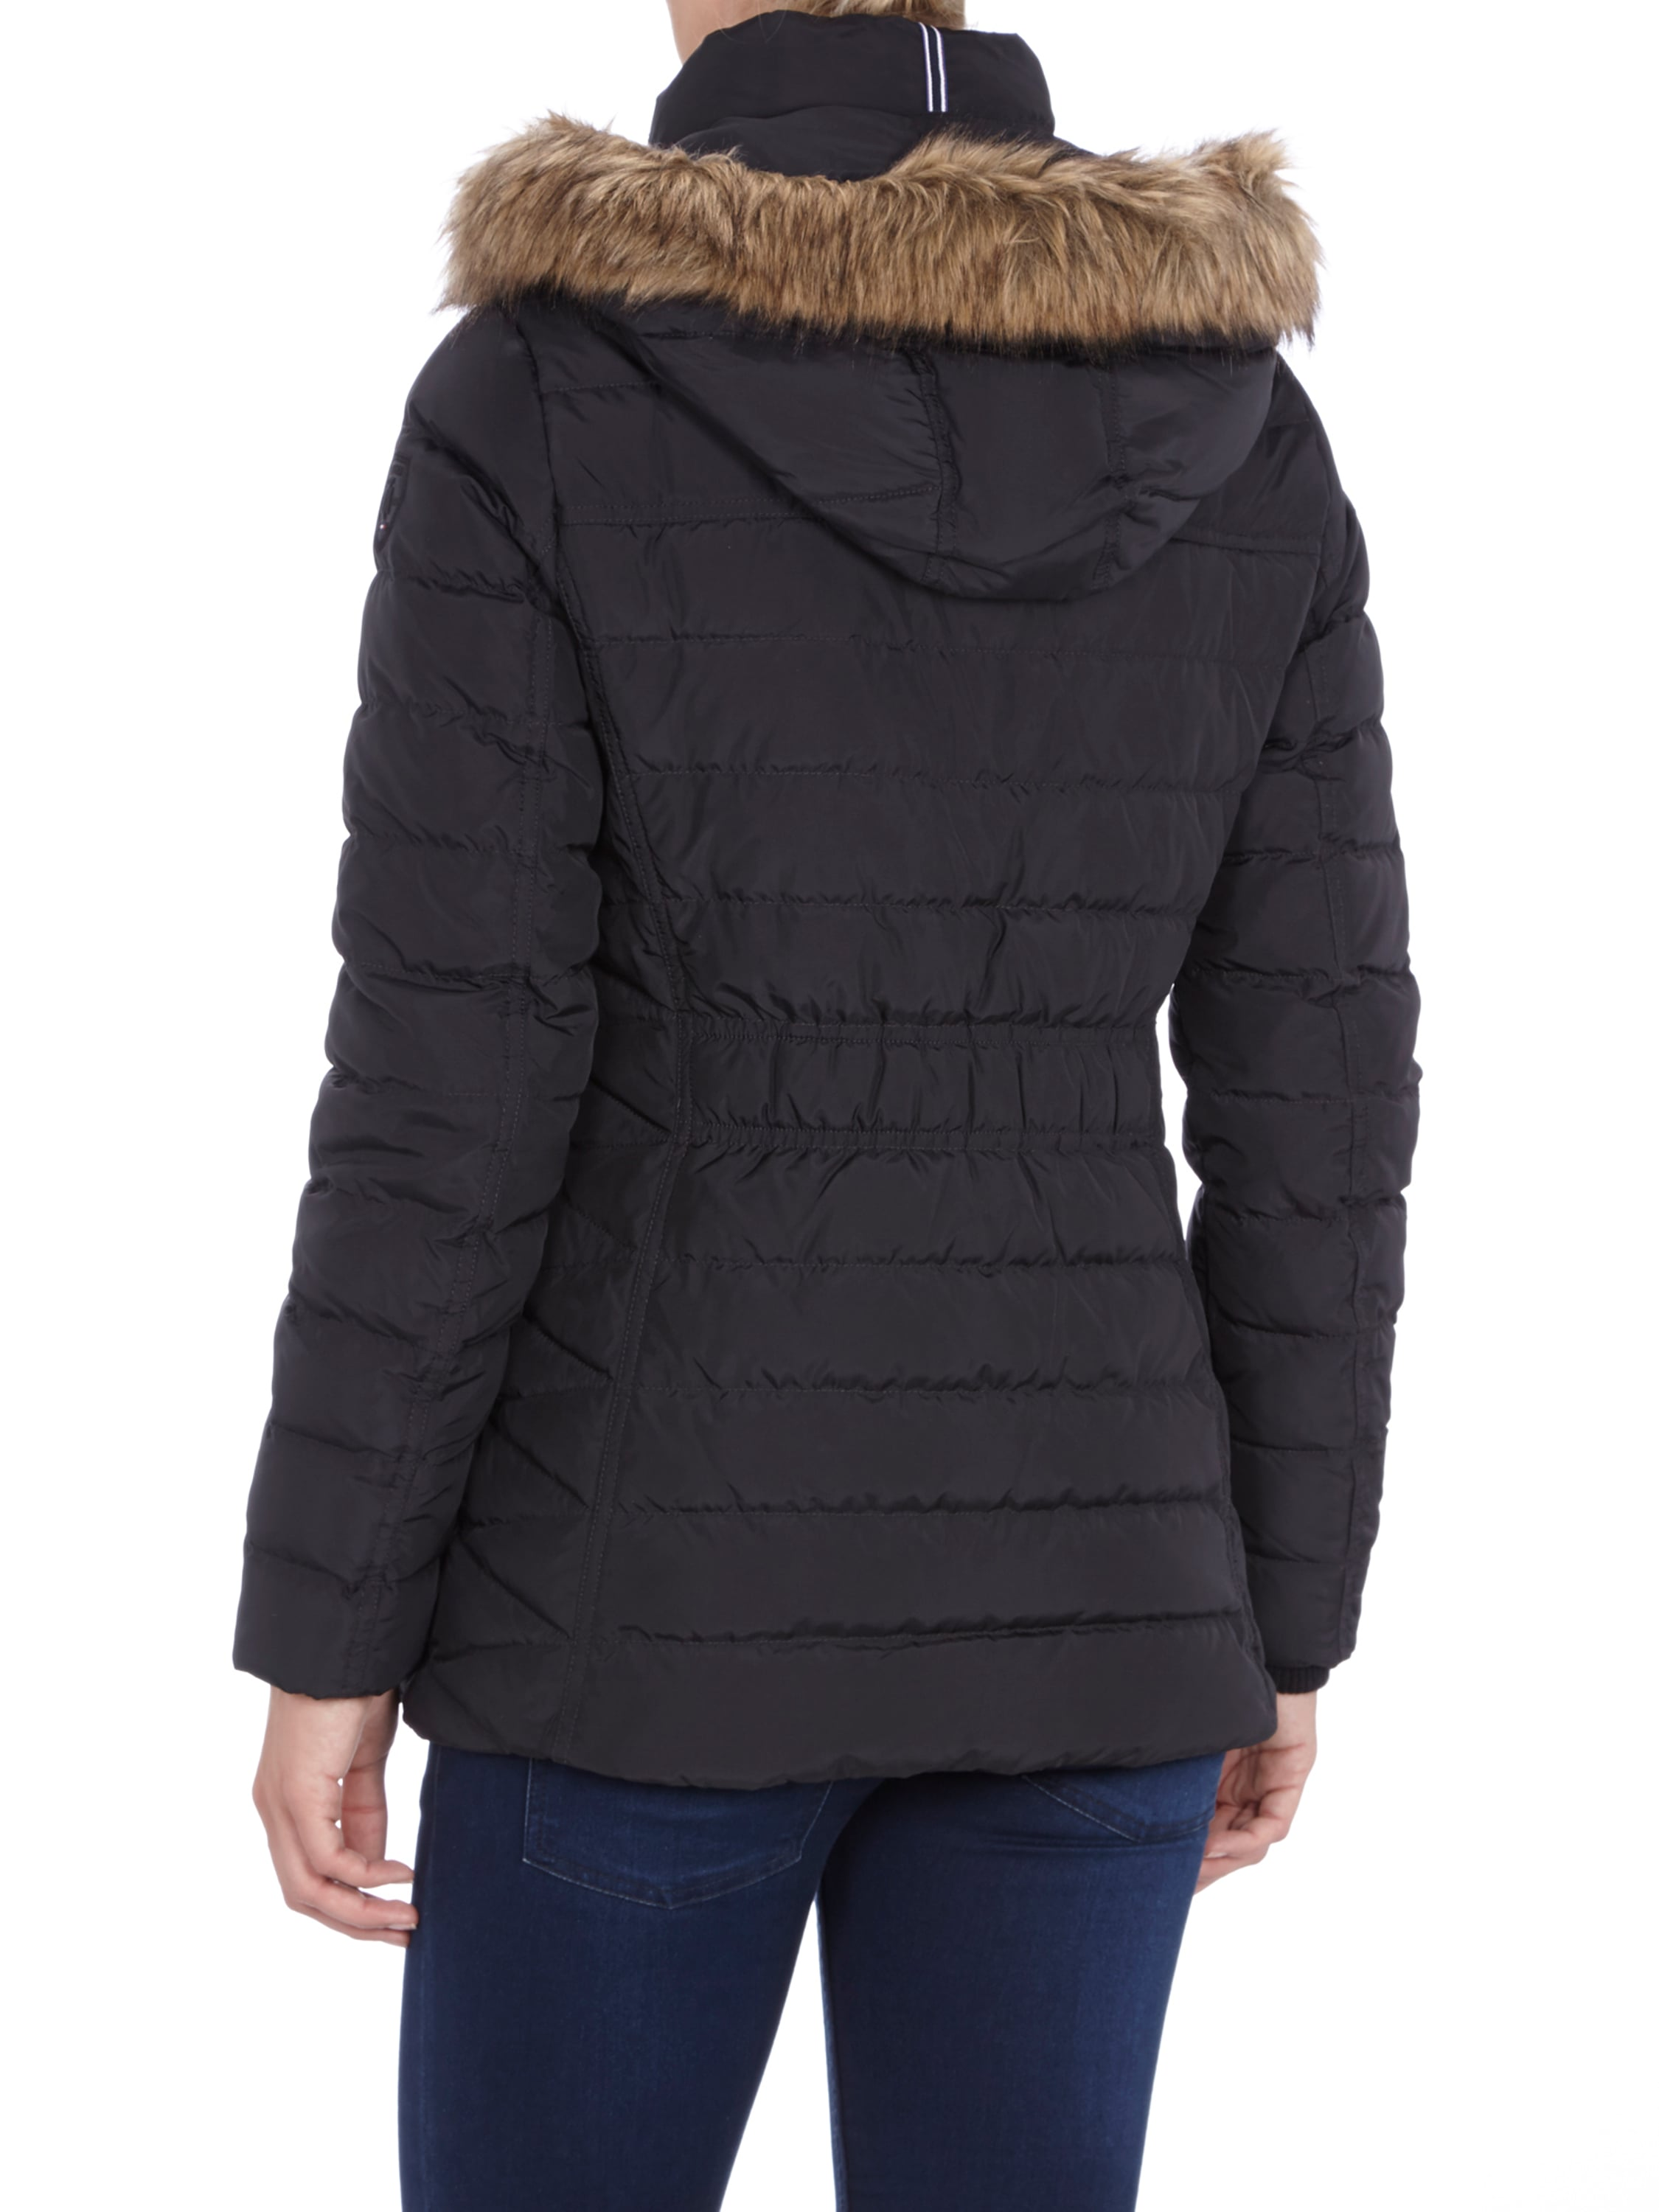 Winterjacken damen 2014 tommy hilfiger